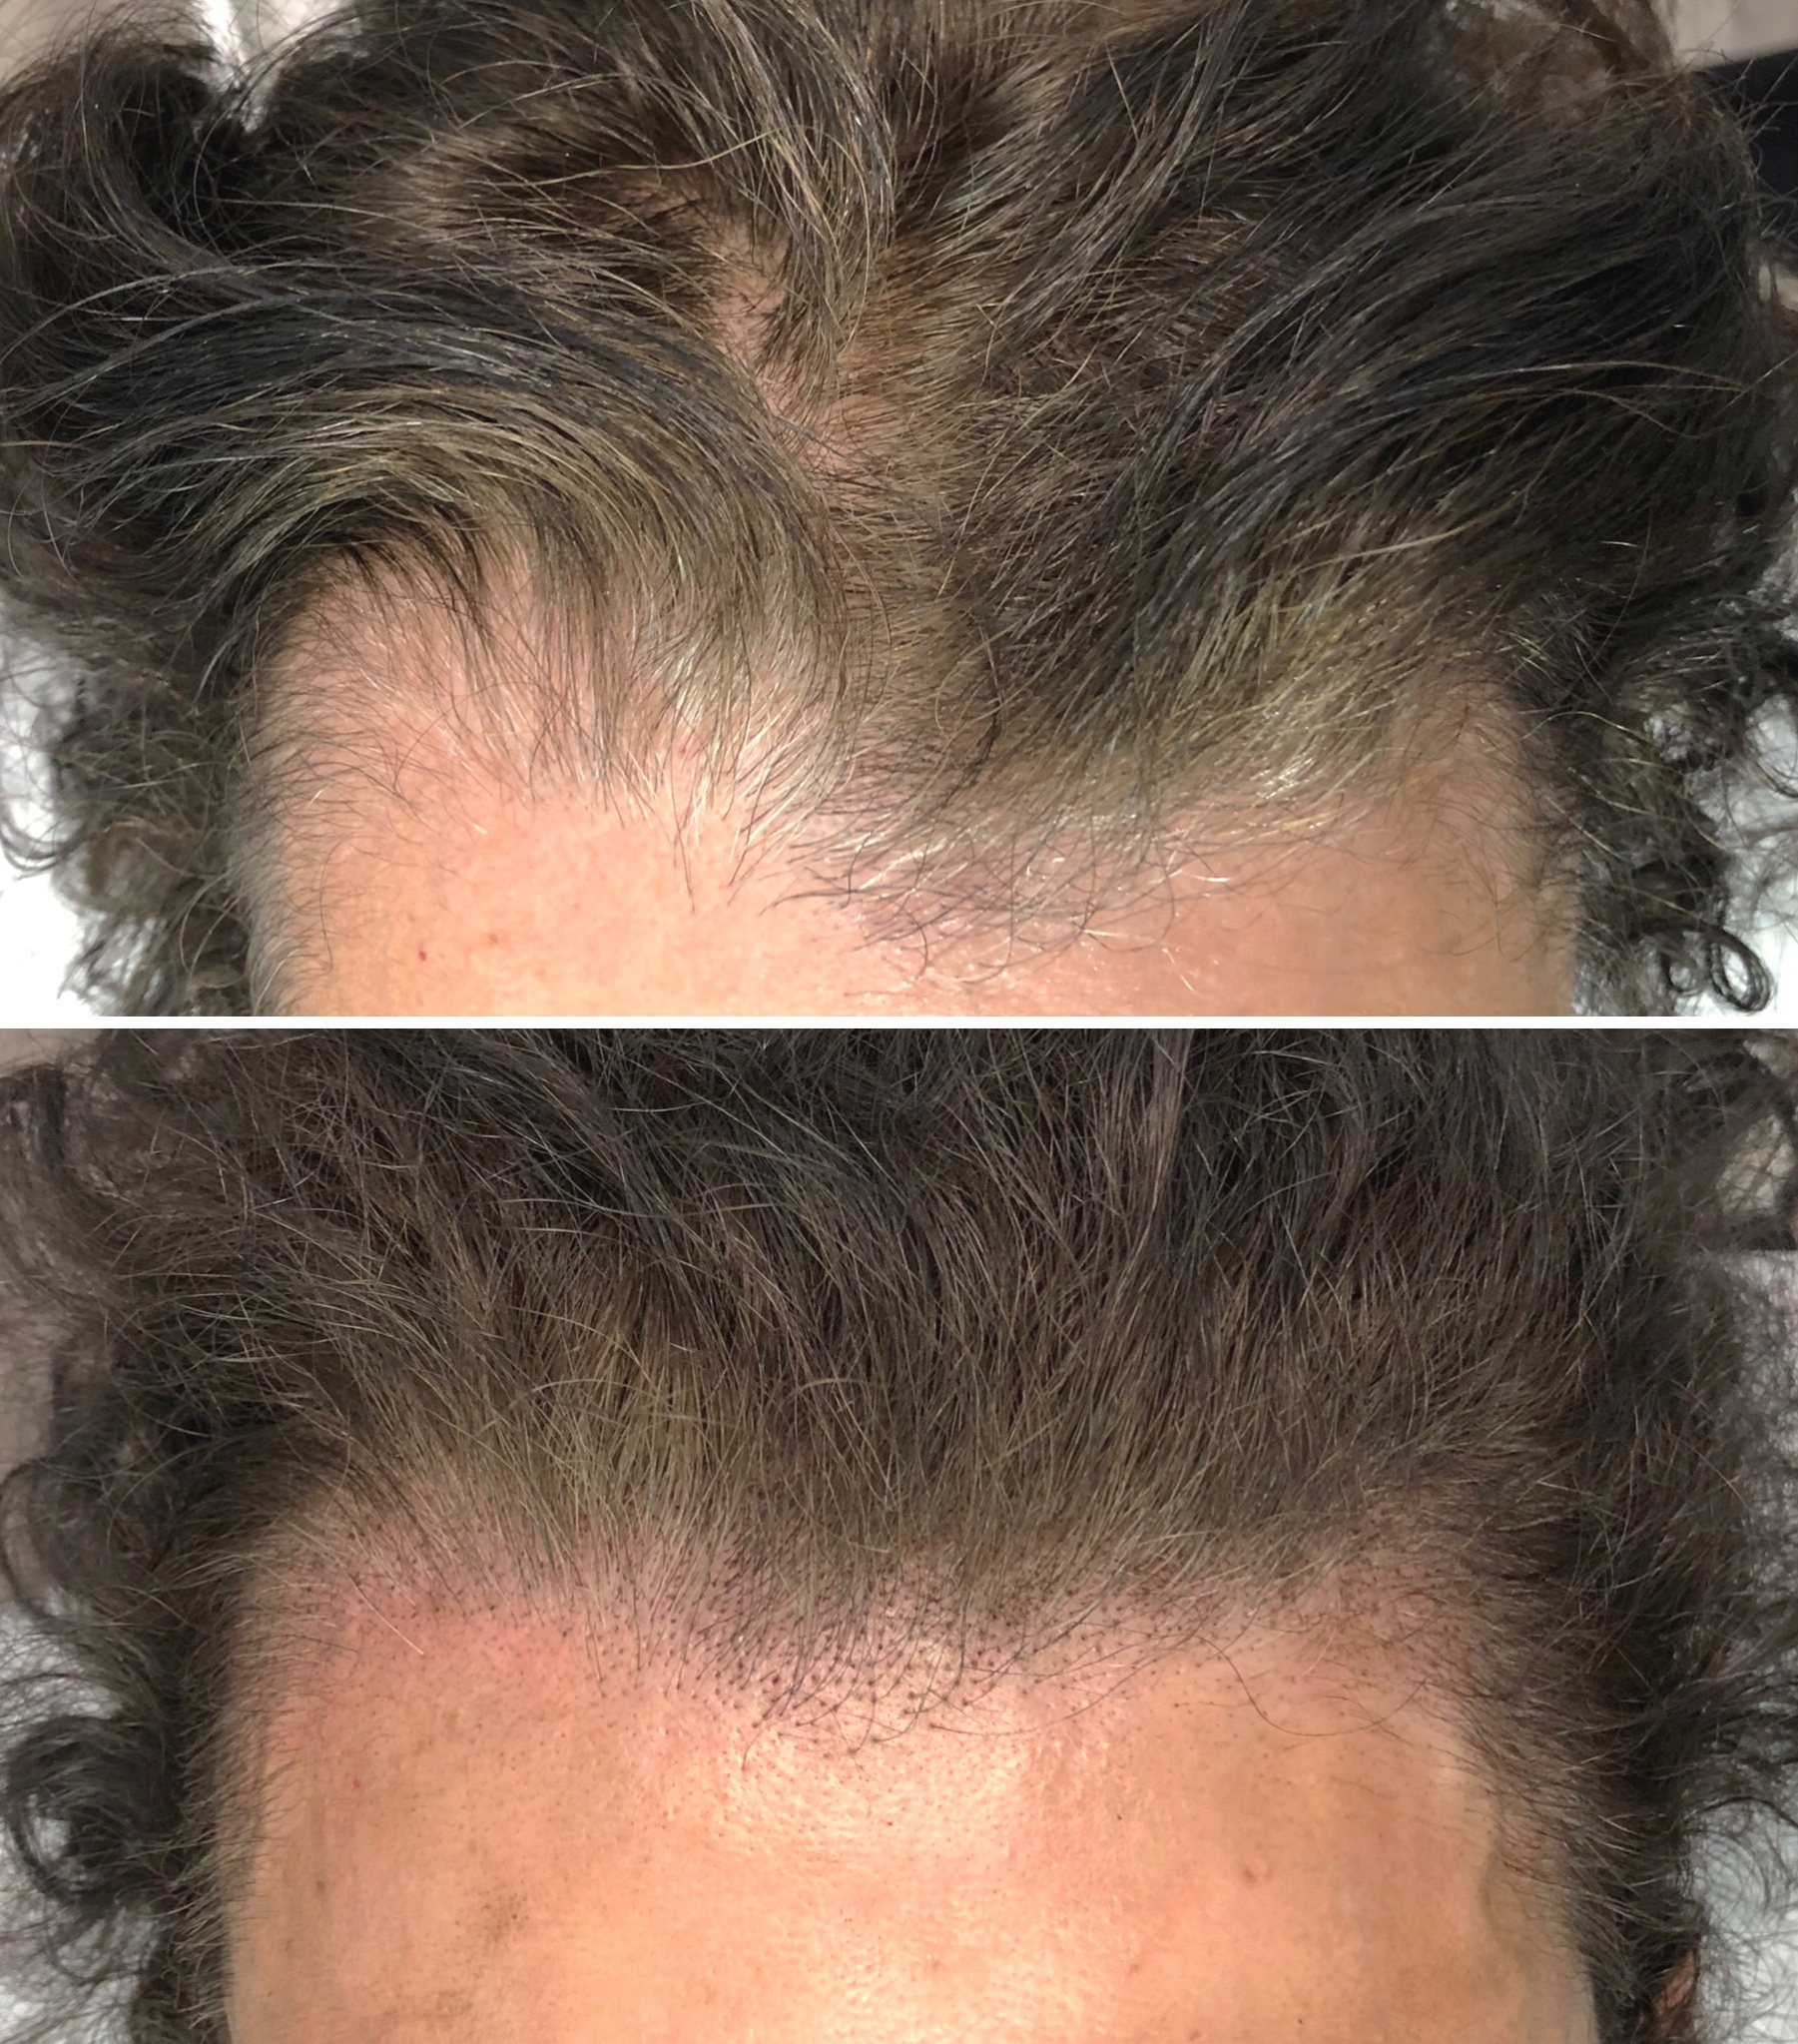 Who is a candidate for SMP? - Men and women wanting the appearance of added hair densityPeople with shaved heads that desire hairline definition & added densityAlopecia sufferersThose who want to camouflage burns, scars, or birthmarksNon-candidates for hair transplantationThose with transplanted hair who want to enhance their existing restoration